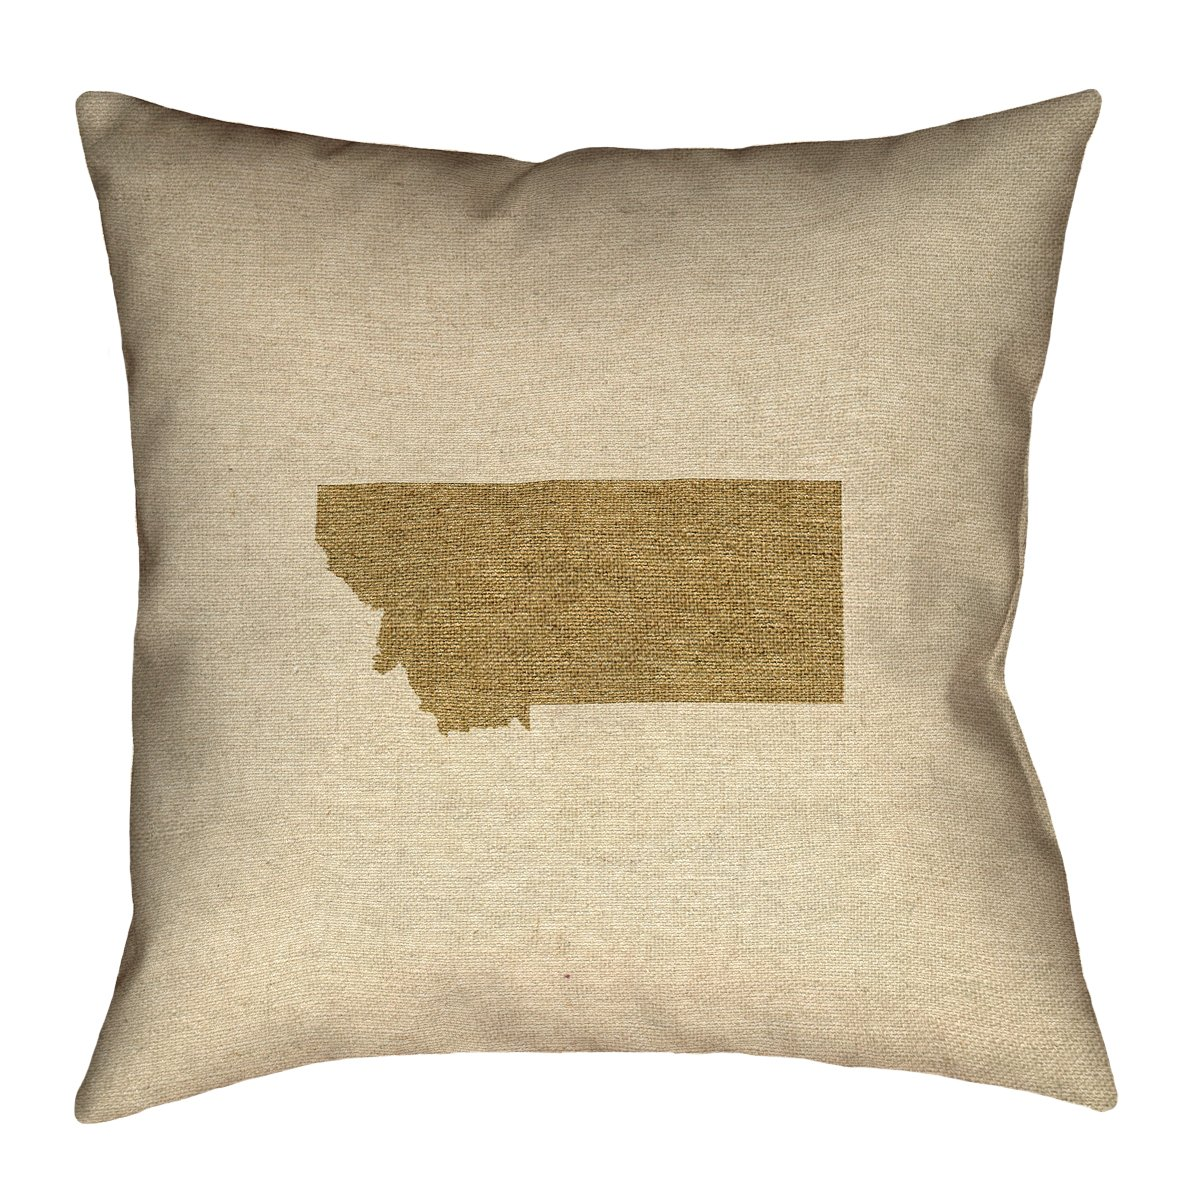 ArtVerse Katelyn Smith 18 x 18 Cotton Twill Double Sided Print with Concealed Zipper /& Insert Montana Canvas Pillow